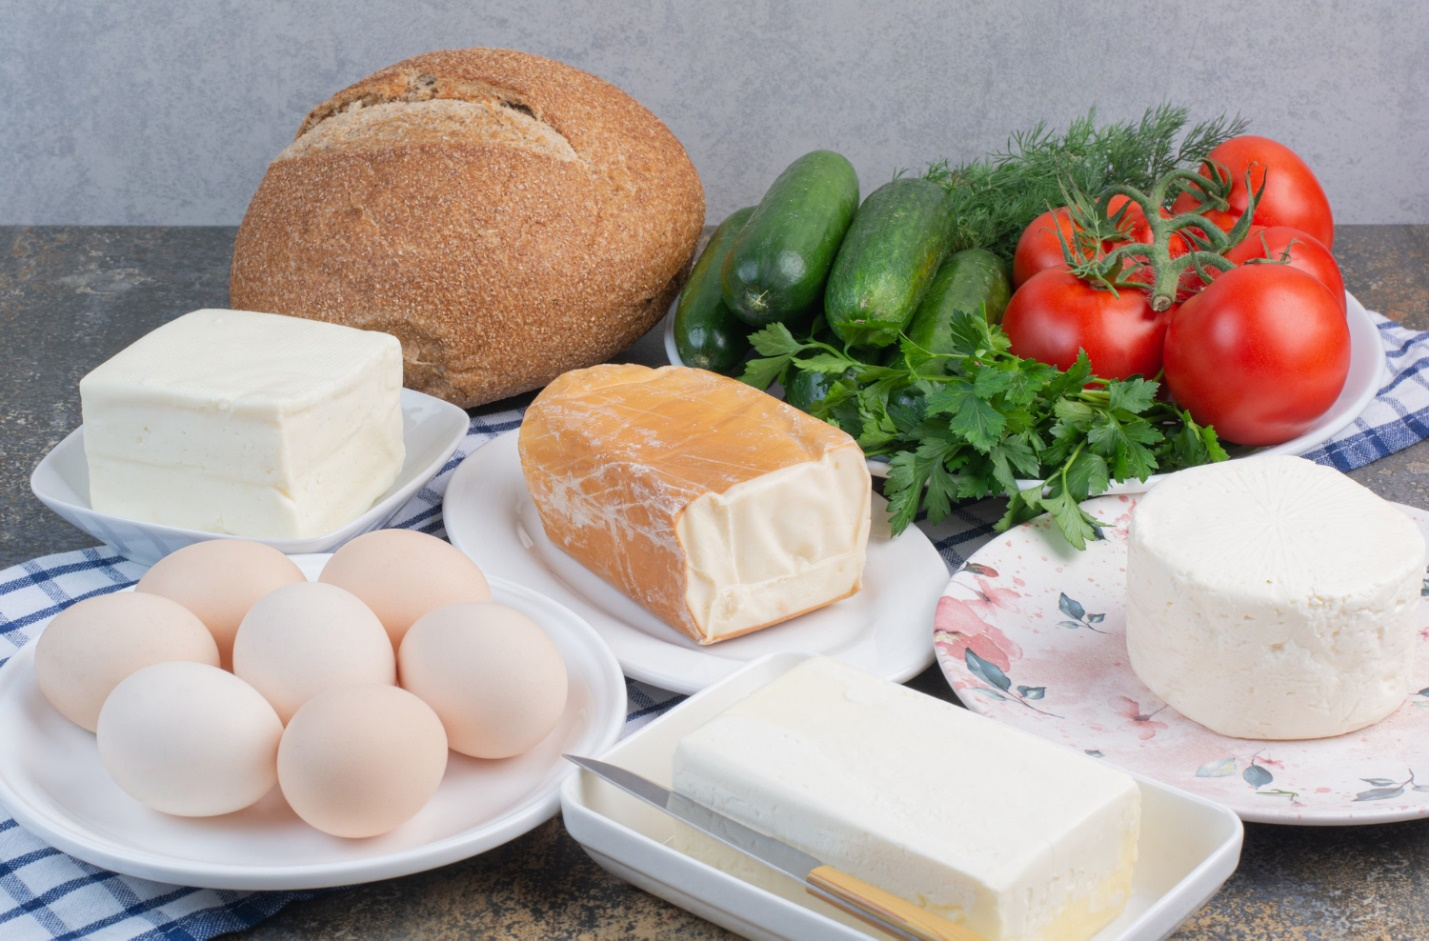 C:\Users\Dell\Downloads\dairy-products-bread-vegetables-breakfast.jpg